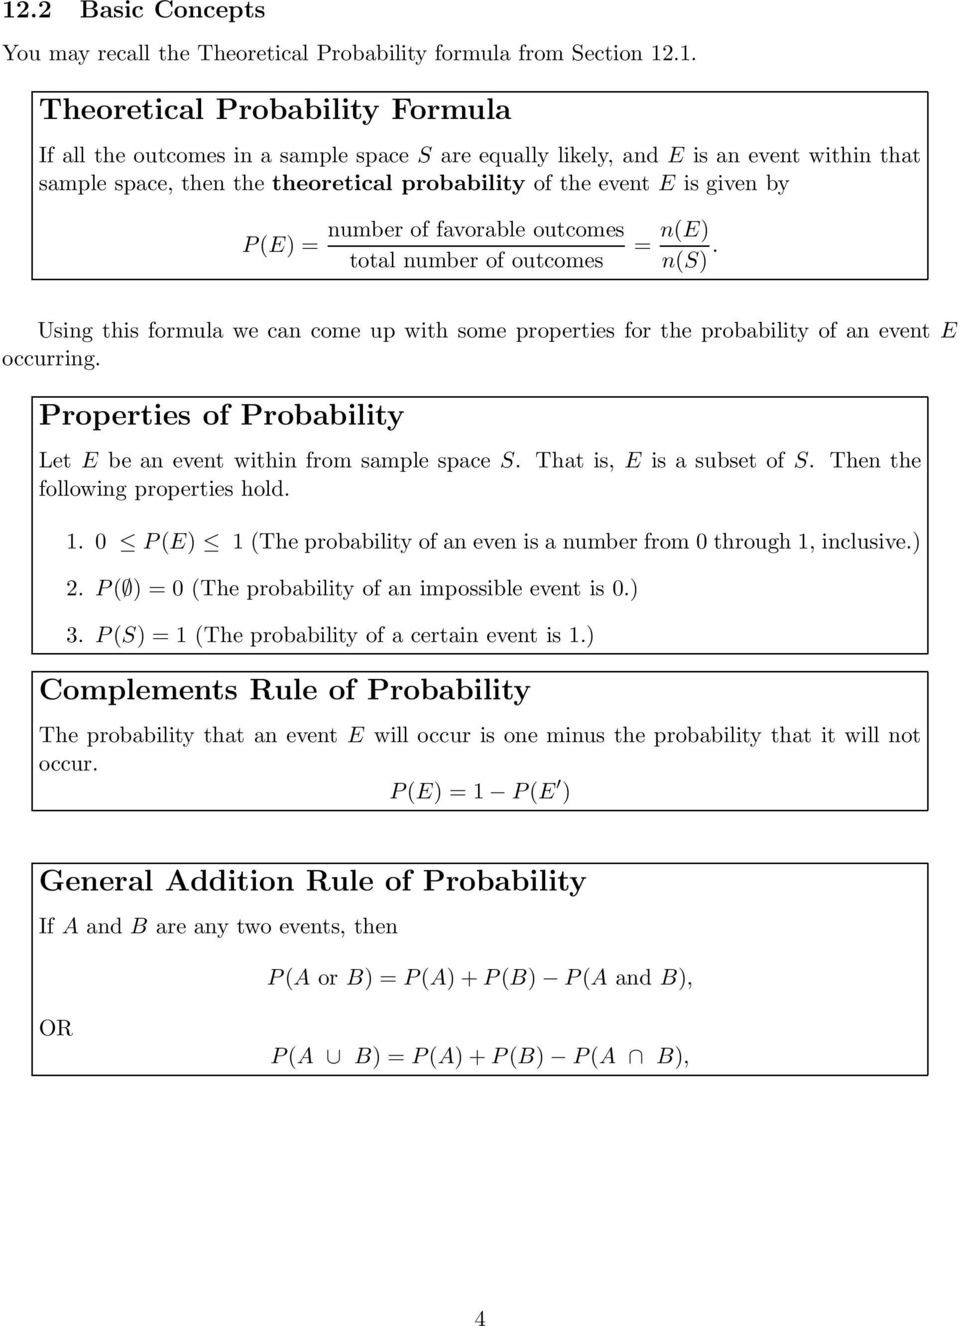 Using this formula we can come up with some properties for the probability of an event E occurring. Properties of Probability Let E be an event within from sample space S. That is, E is a subset of S.